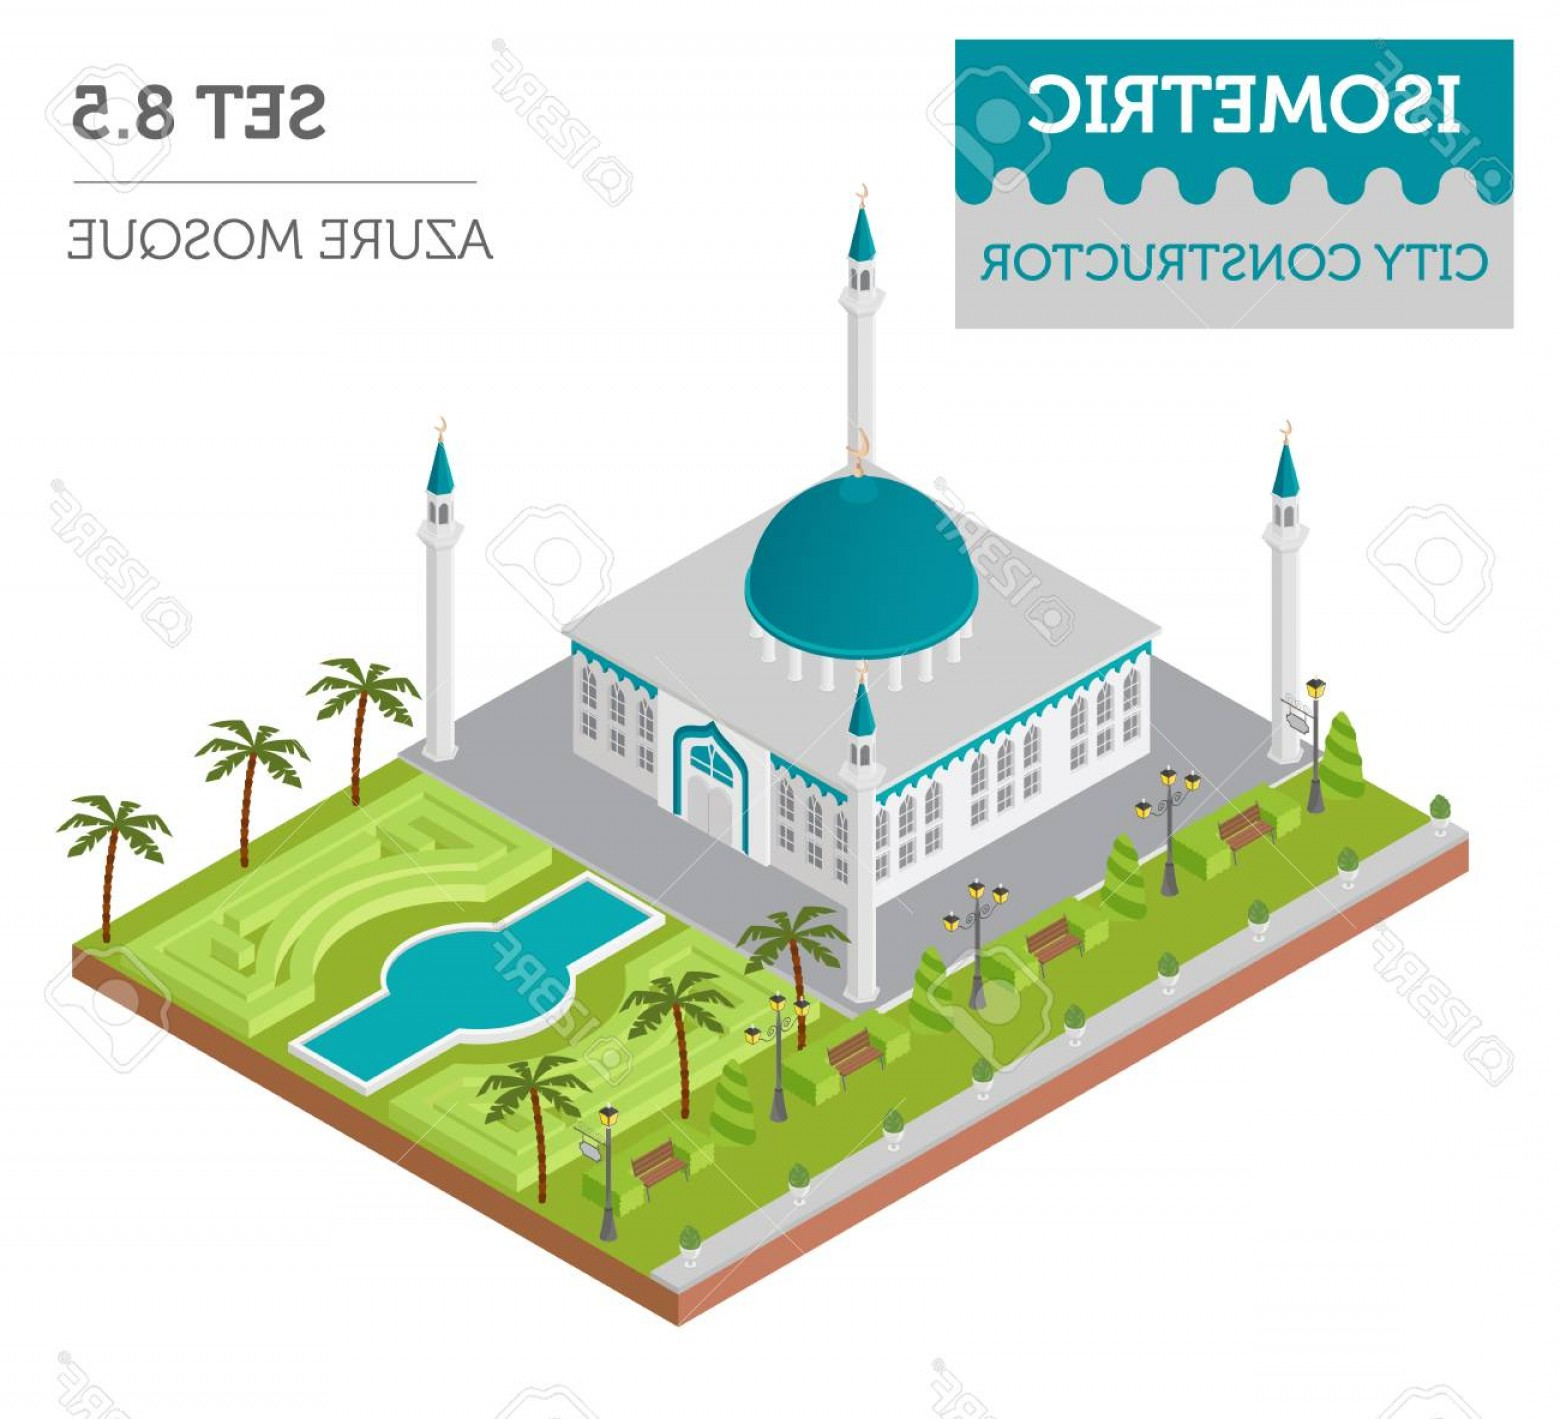 Mosque Vector Map: Photostock Vector Flat D Isometric Islamic Mosque And City Map Constructor Elements Such As Building Minaret Garden I